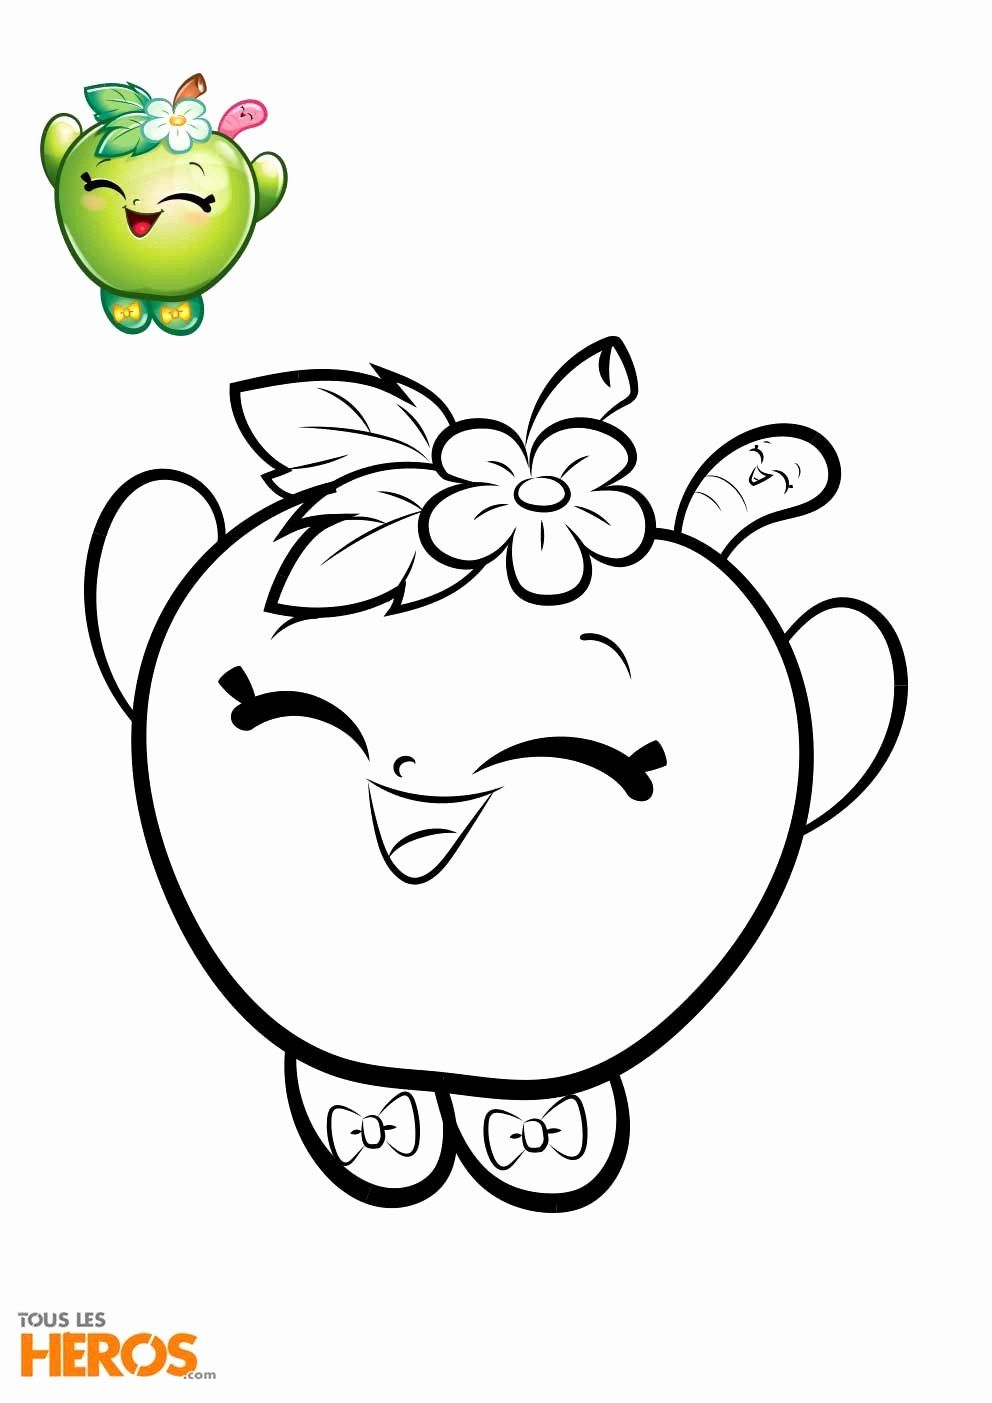 Shopkins Coloring Embroidery Design Fresh 57 Maison De Shopkins Shopkins Drawings Shopkins Colouring Pages Coloring Pages